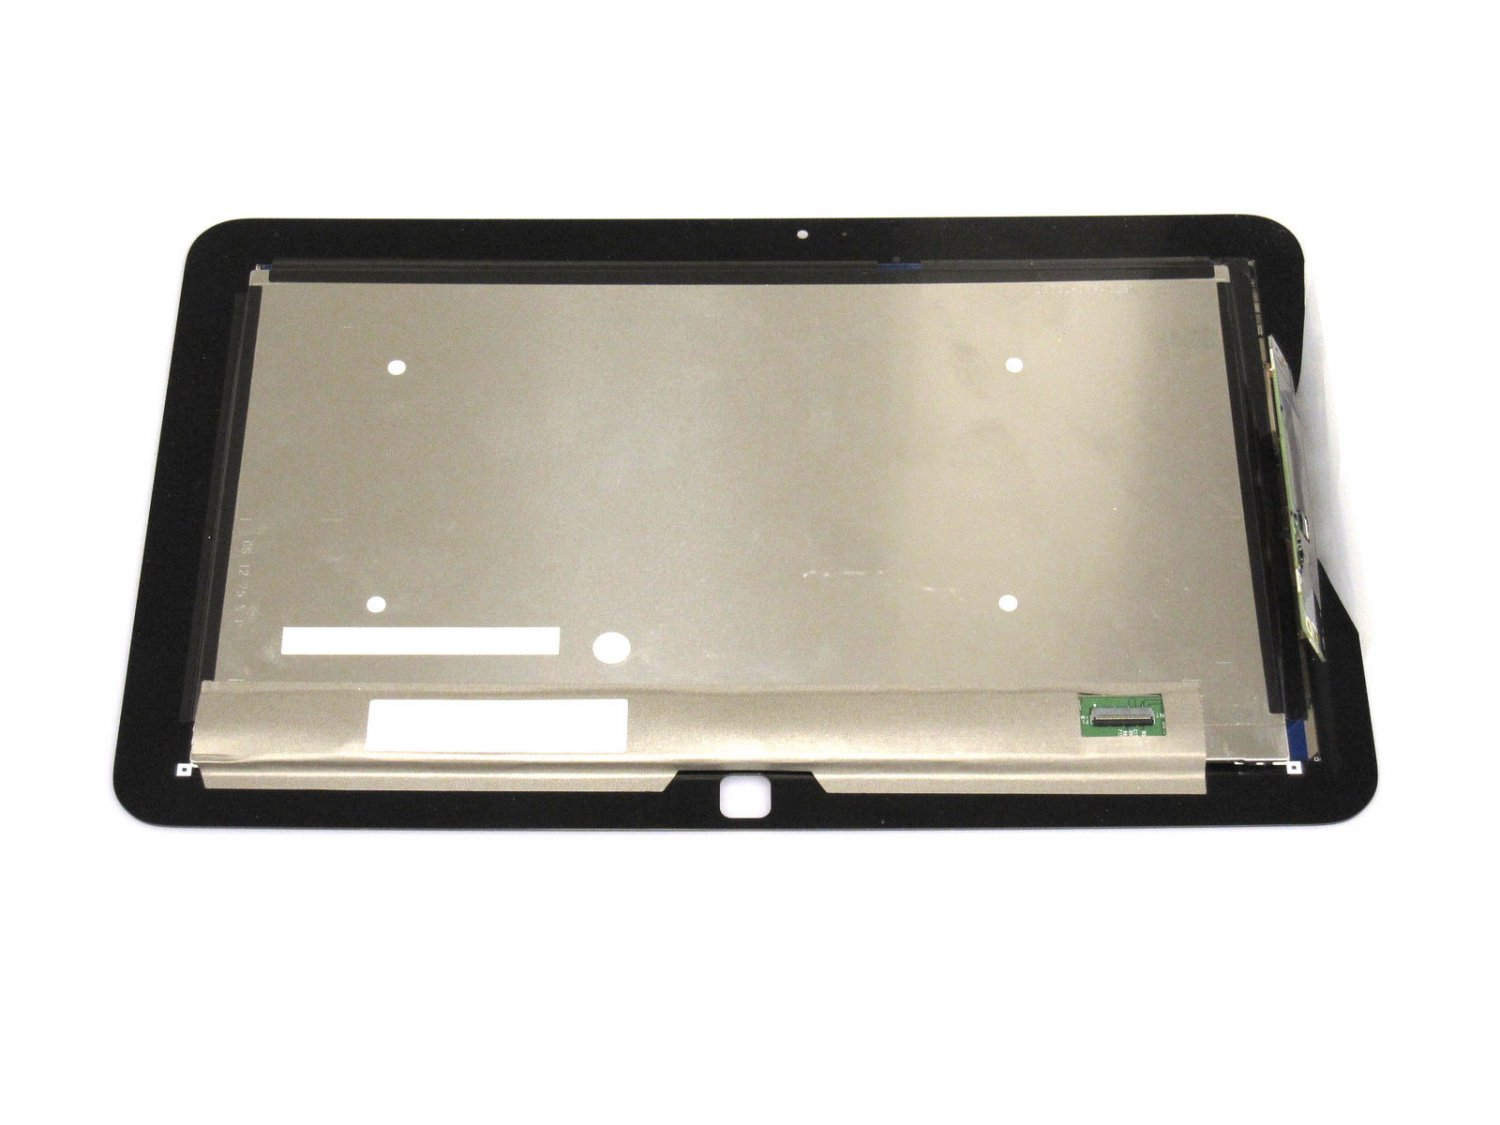 Original OEM TABLET LCD SCREEN FOR DELL XPS 10 10.1